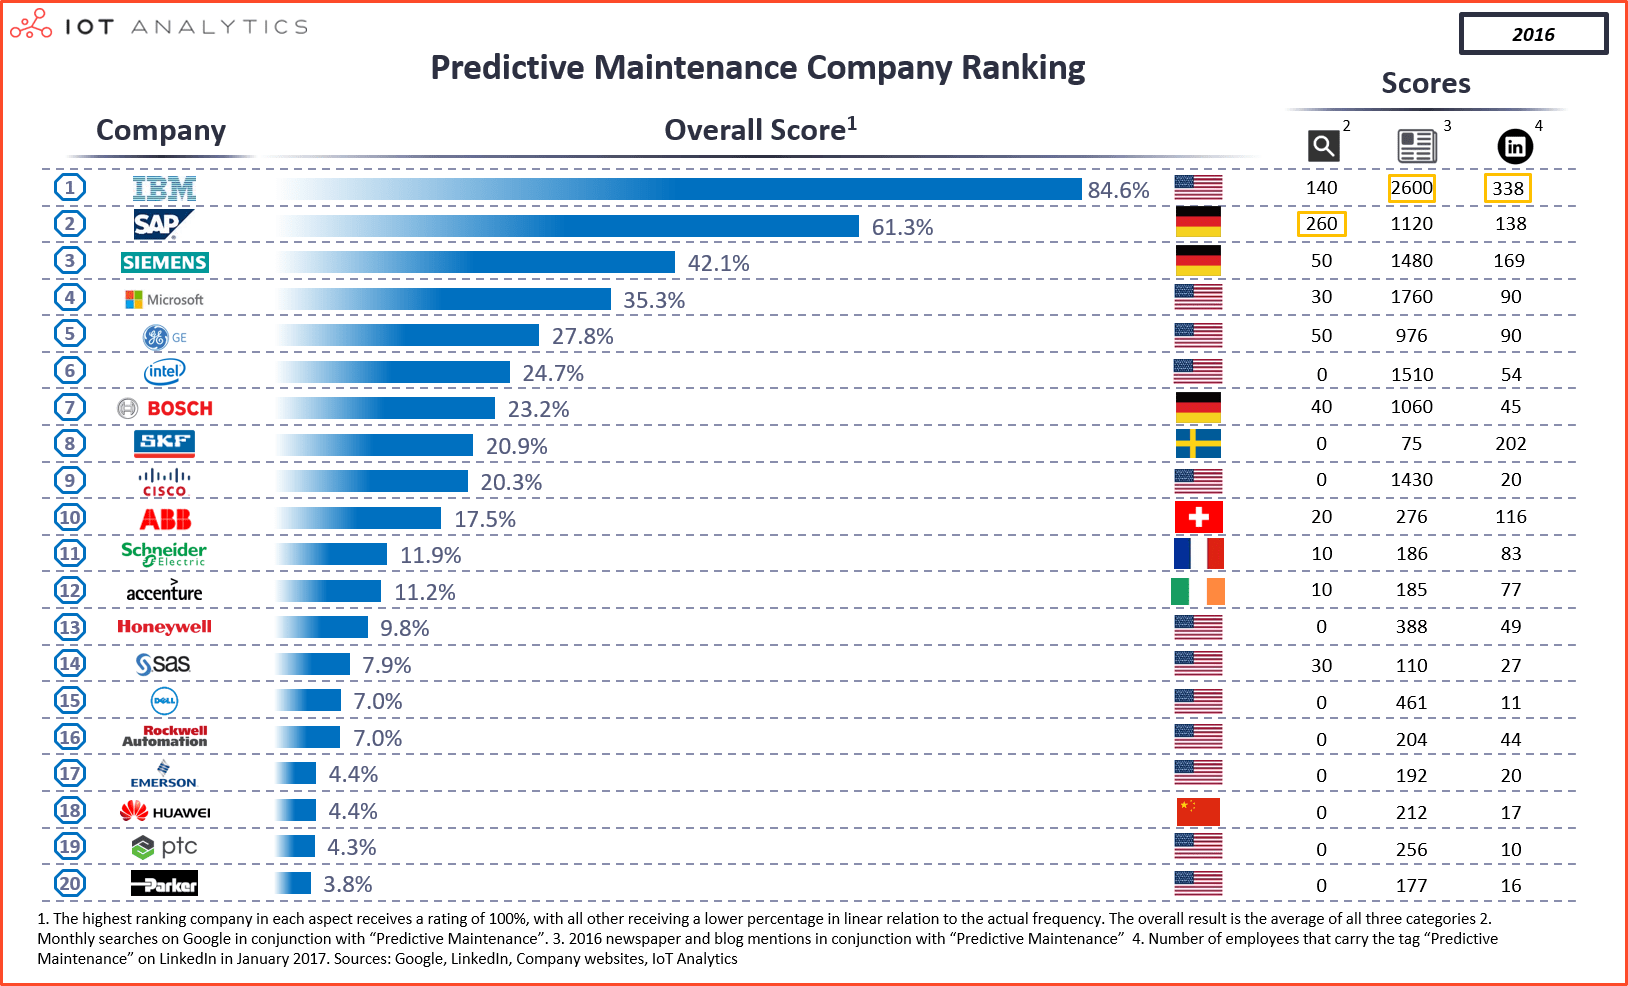 PdM company rankings